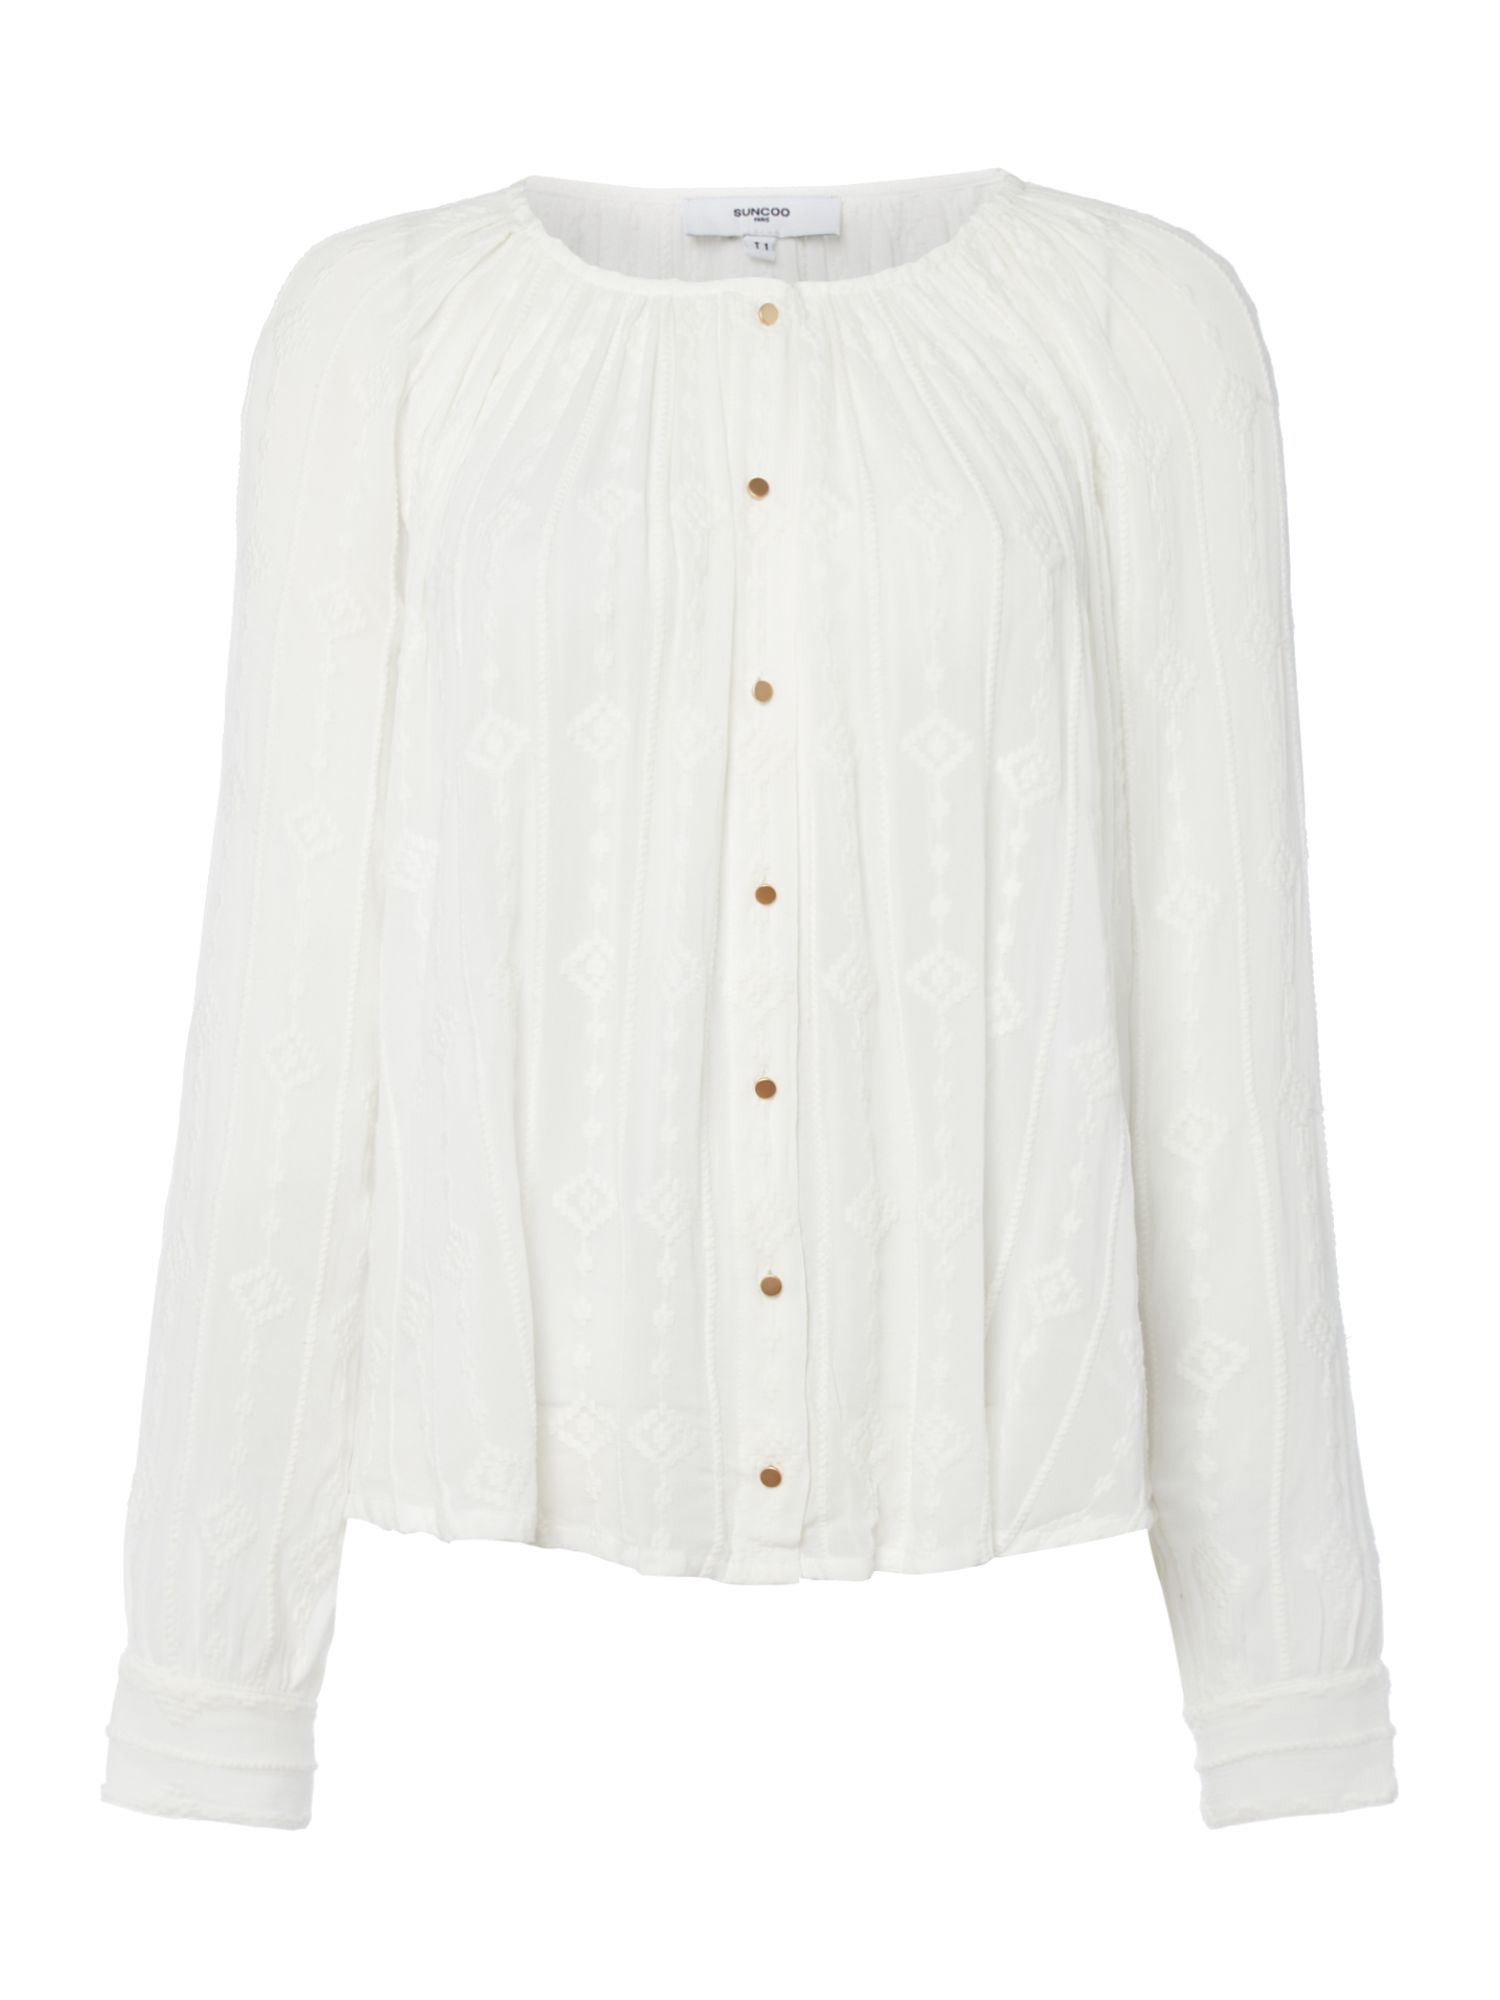 Suncoo Long Sleeves Embroidered Blouse, Off White